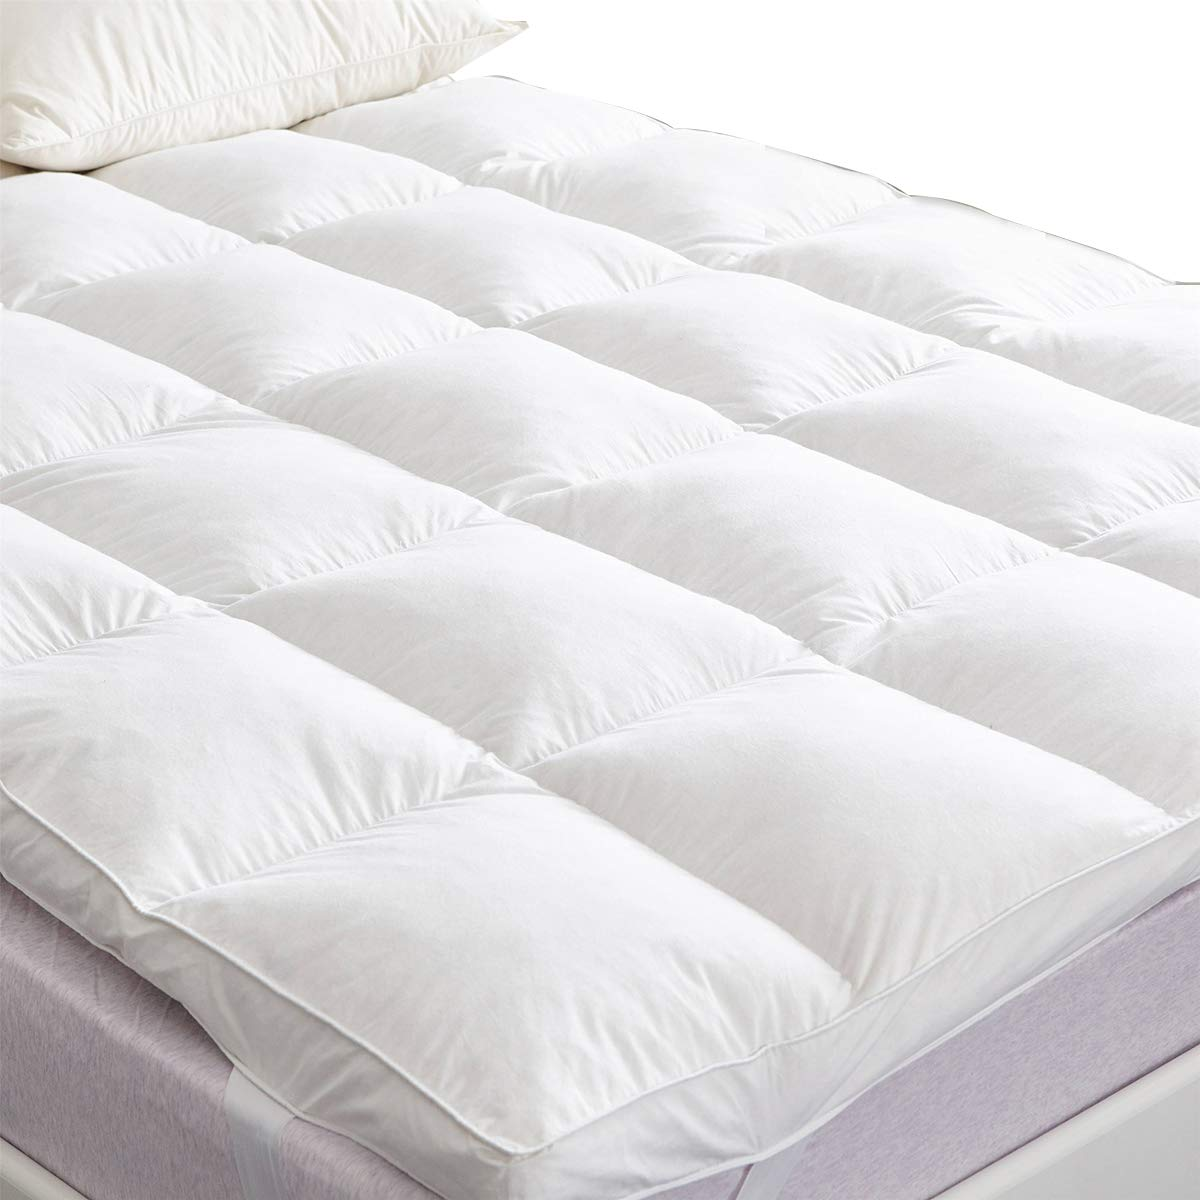 SUFUEE Goose Feather & Down Mattress Topper, 7cm Thick Bed Topper